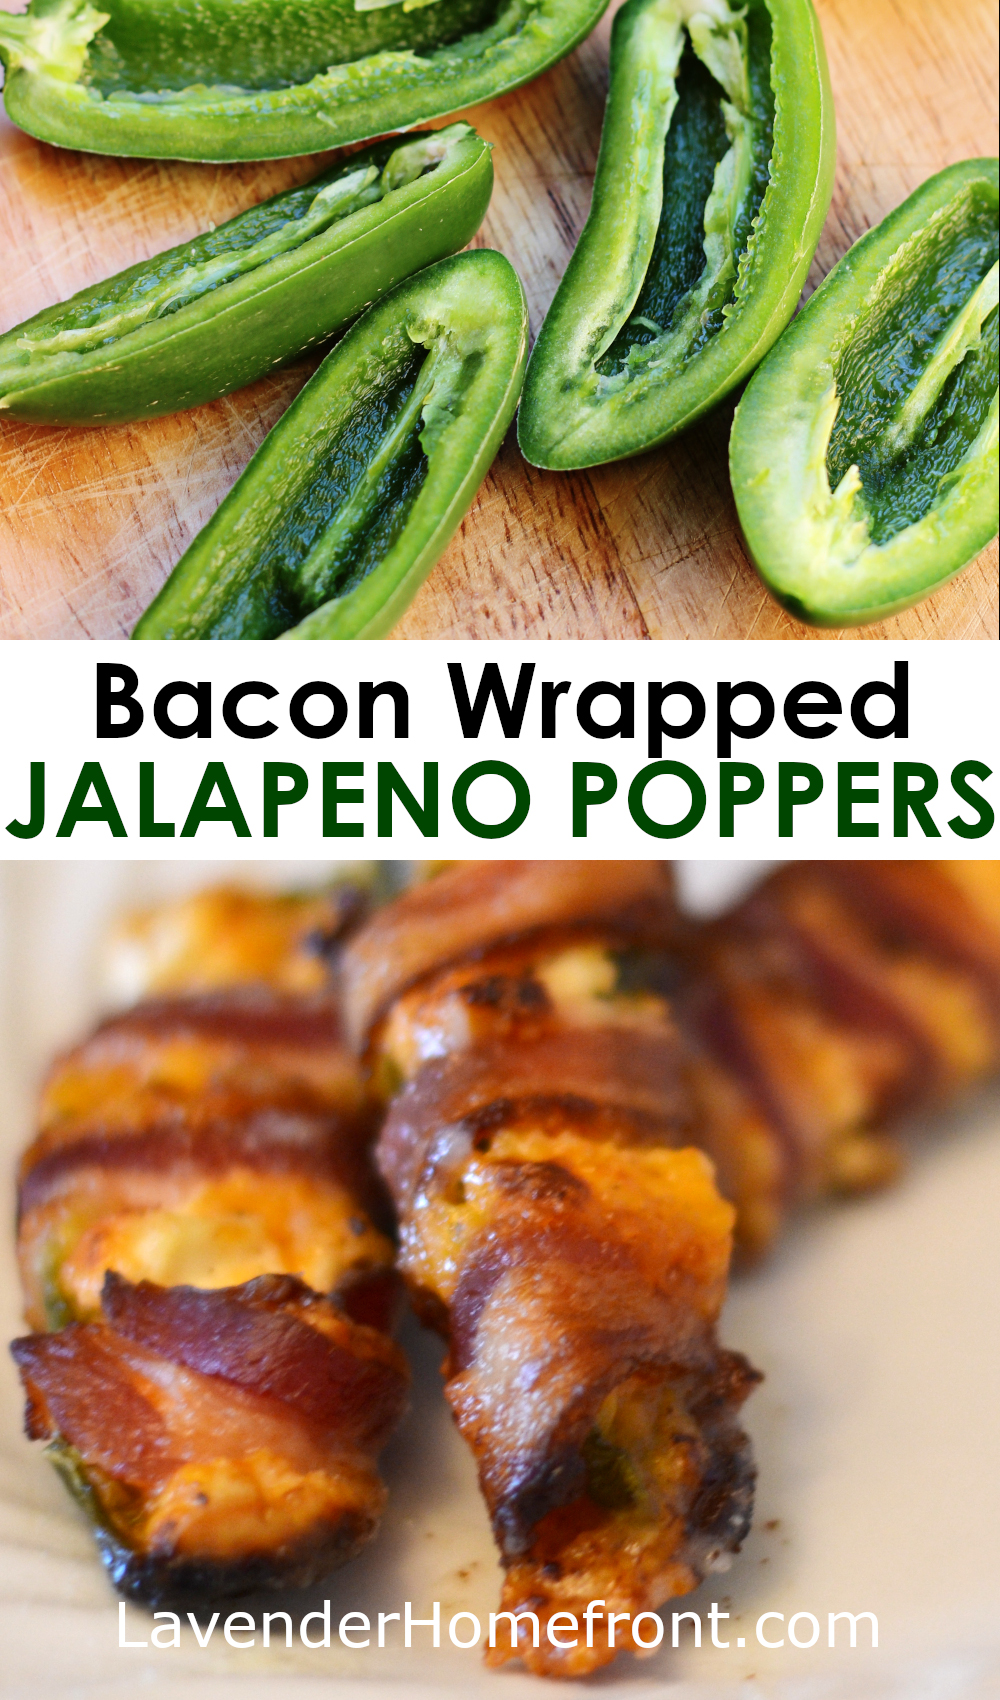 Bacon wrapped jalapeno popper pinnable image with text overlay.